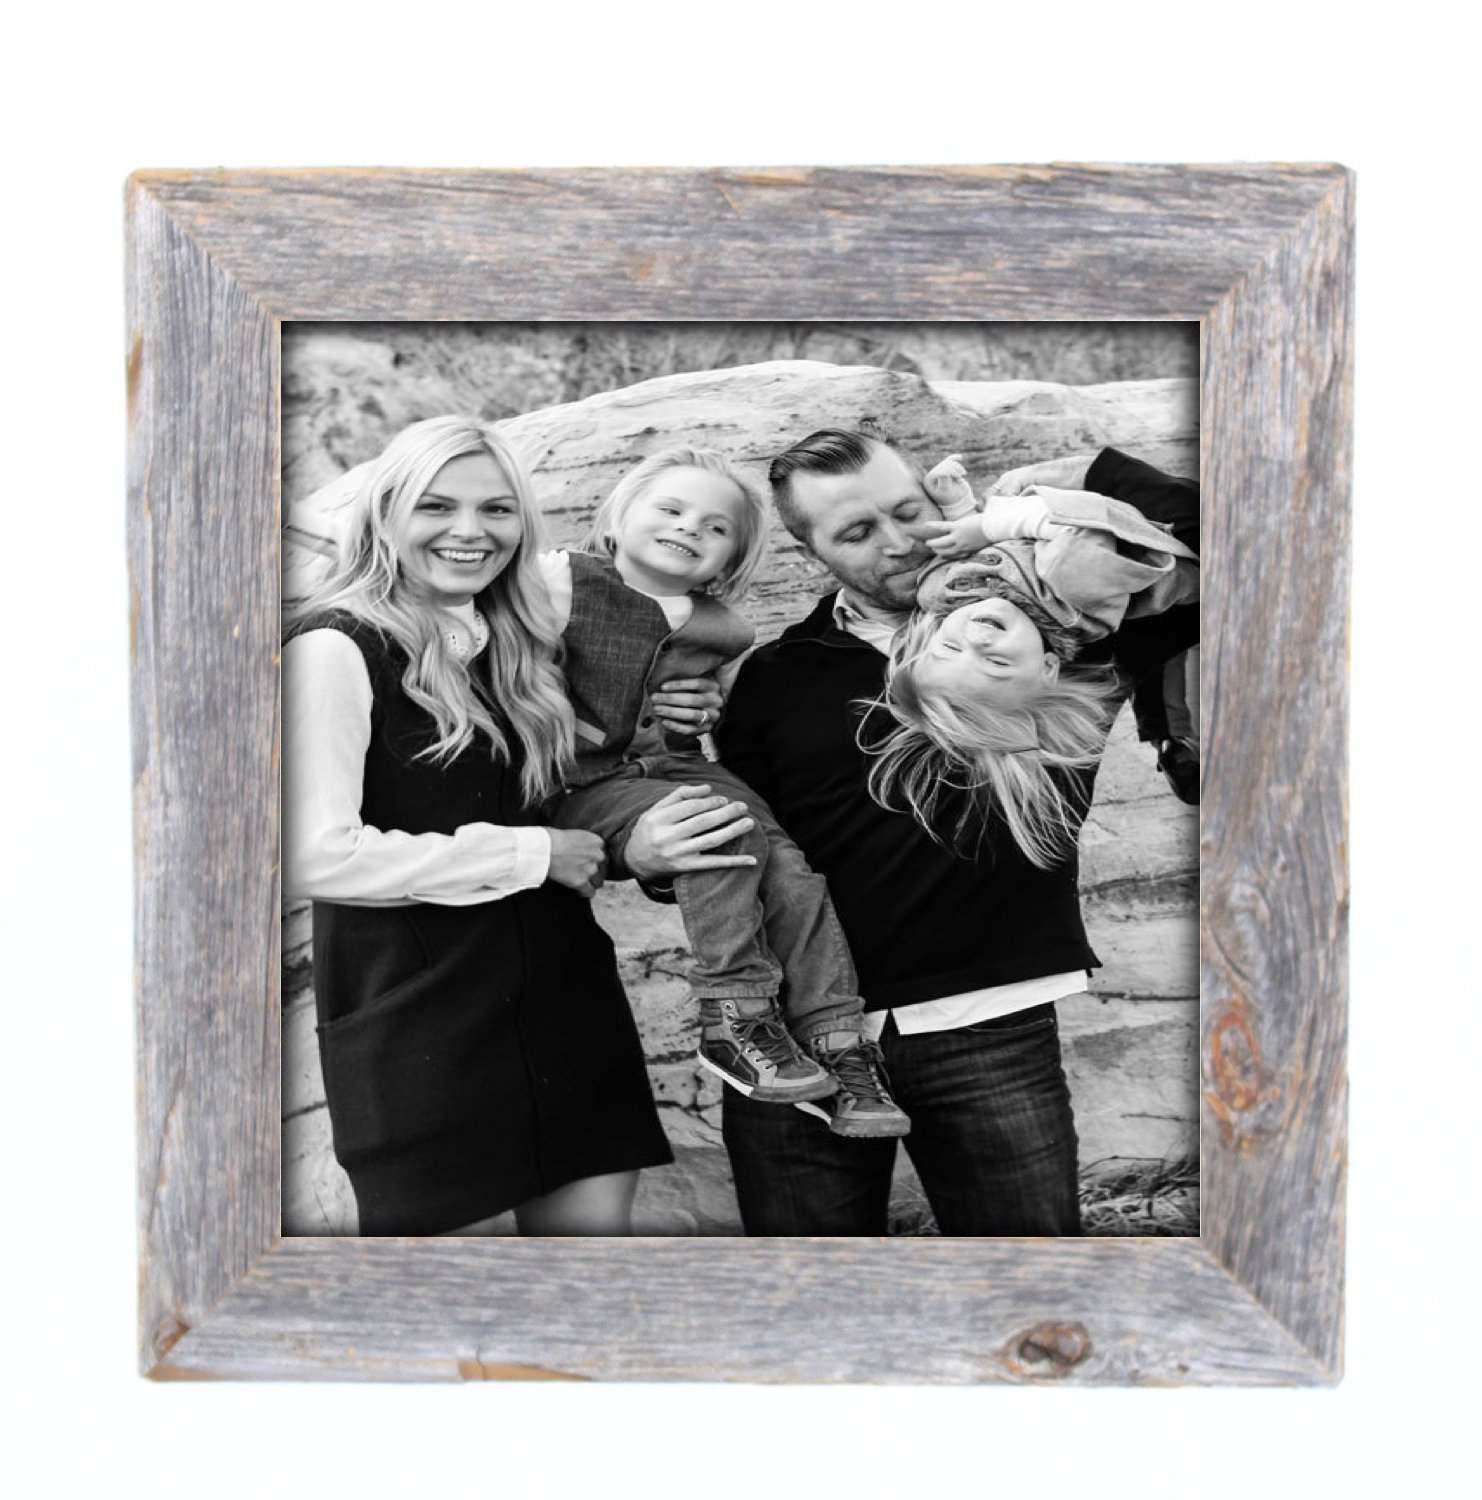 Reclaimed barnwood rustic picture frame - comes in a variety of sizes